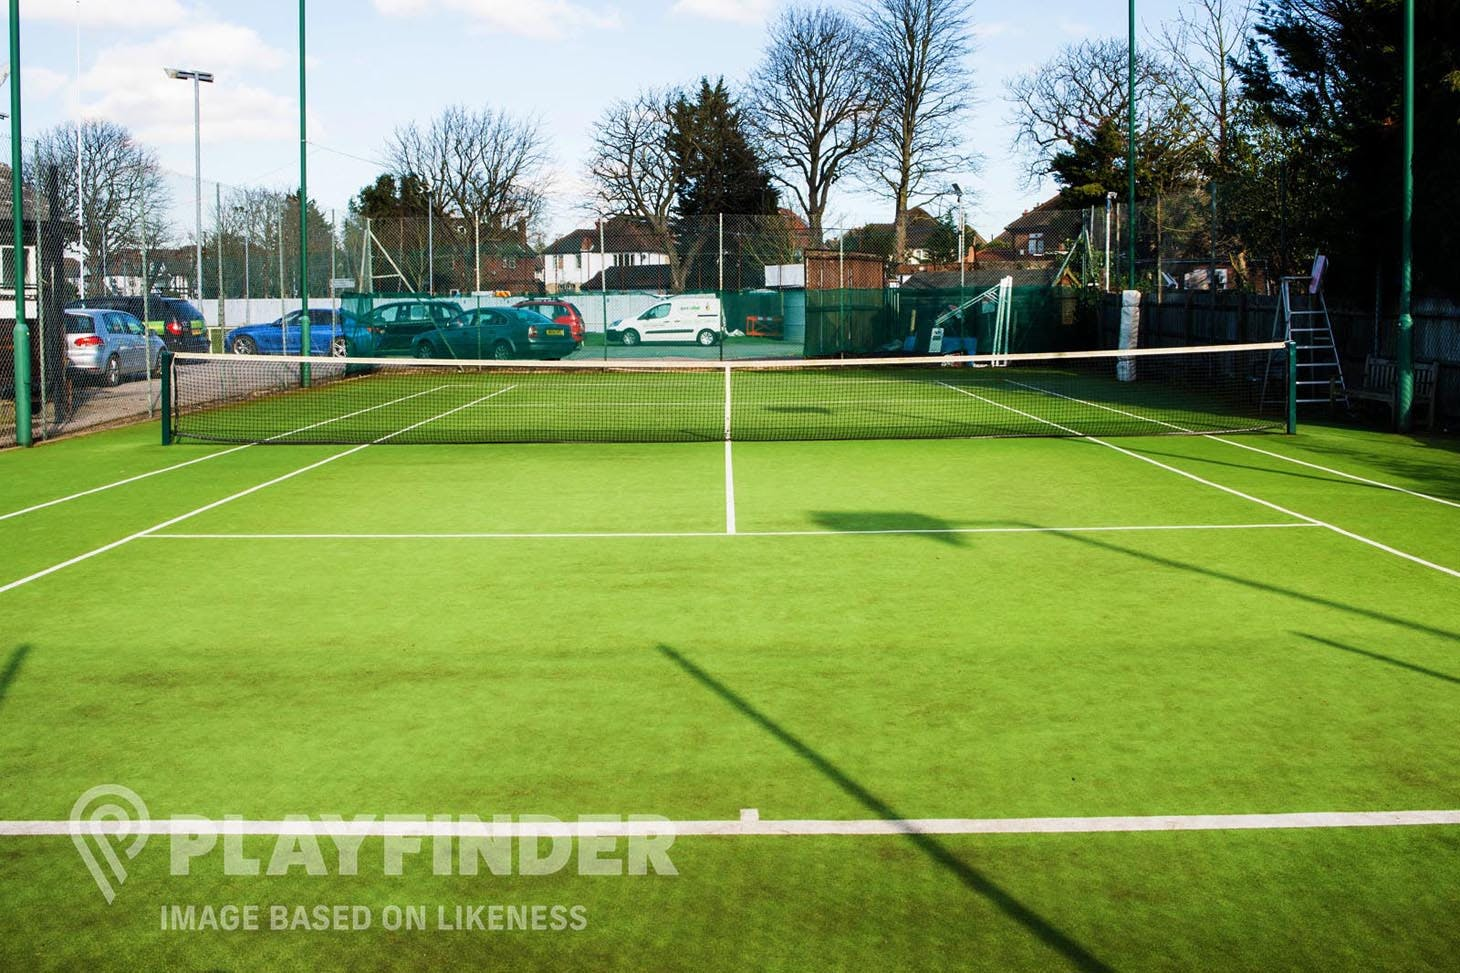 St. Bede's College Outdoor | Astroturf tennis court